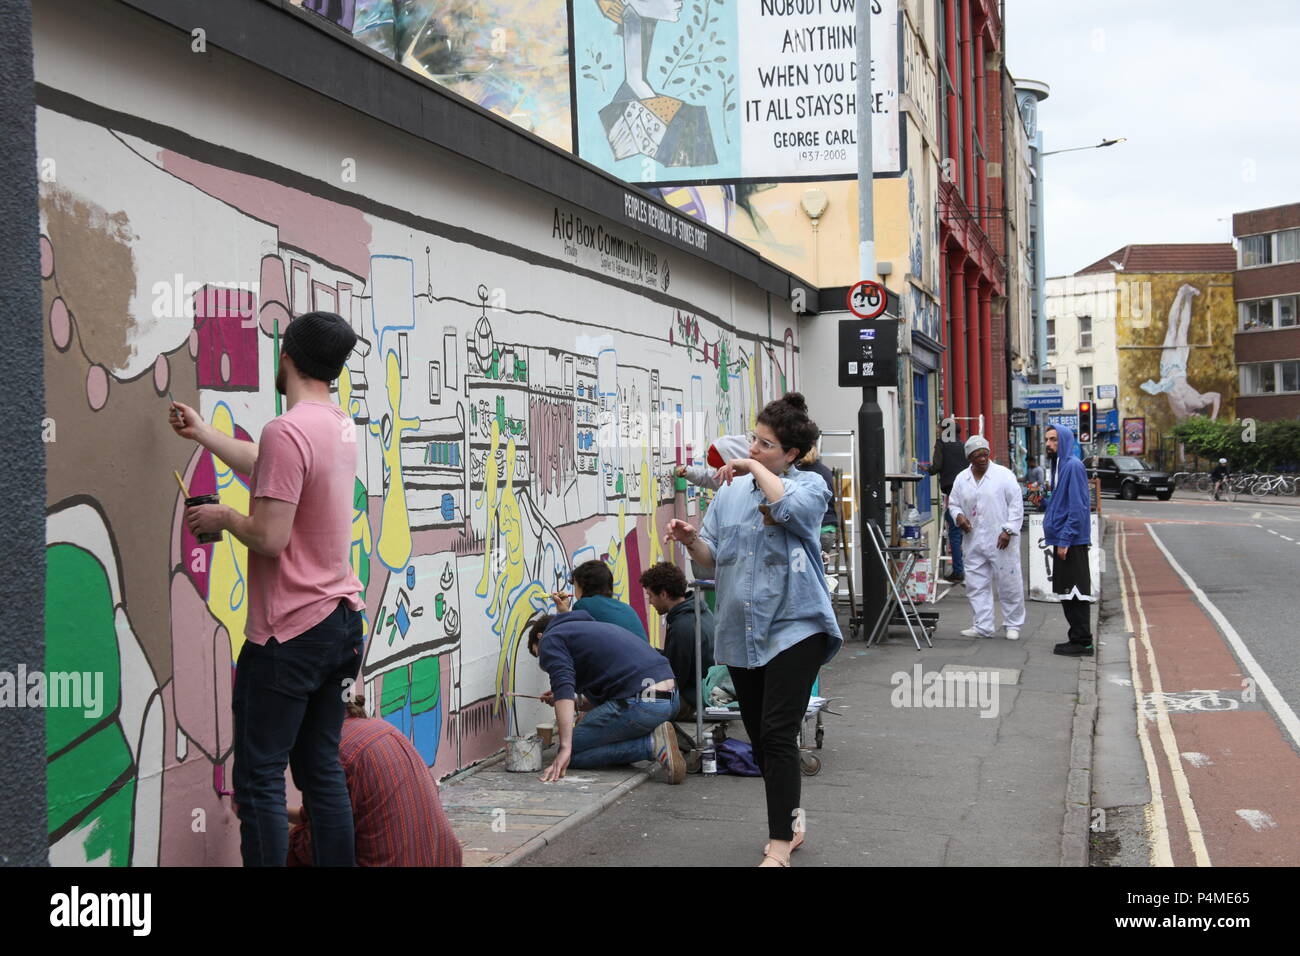 People painting art on city walls in Stokes Croft, Bristol, England. - Stock Image